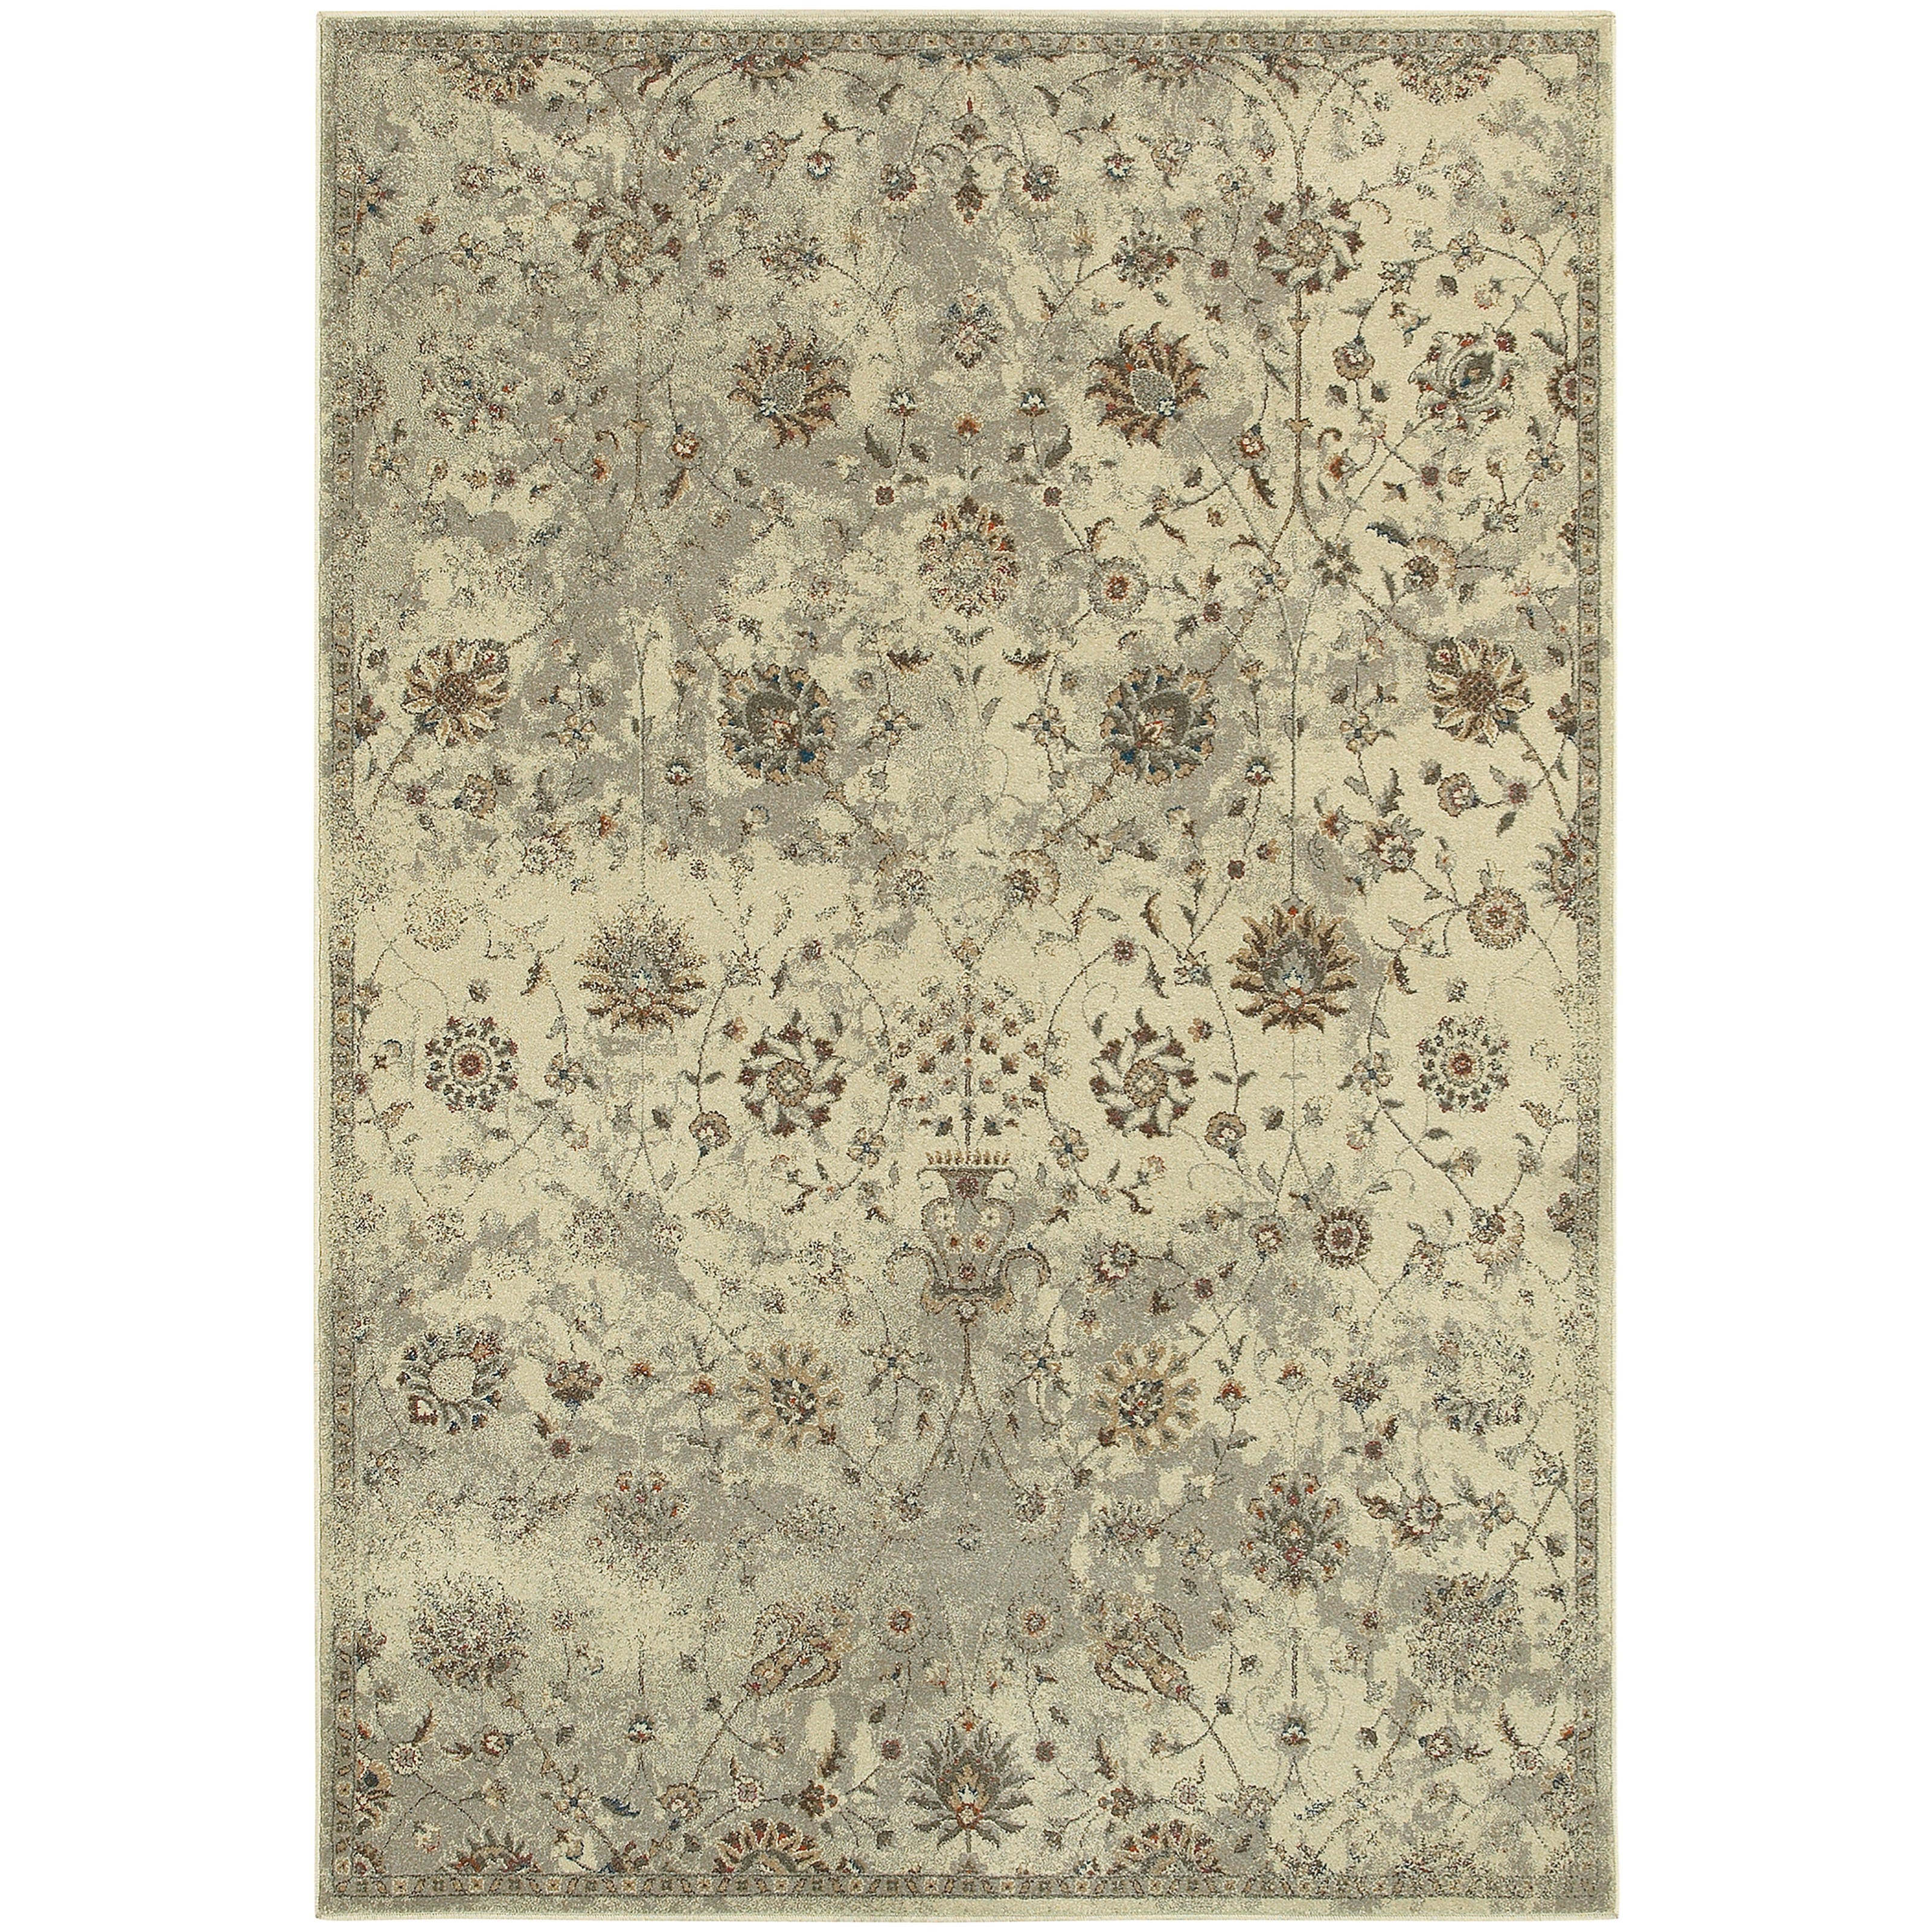 "Pasha 9'10"" X 12'10"" Rectangle Area Rug by Oriental Weavers at Dunk & Bright Furniture"